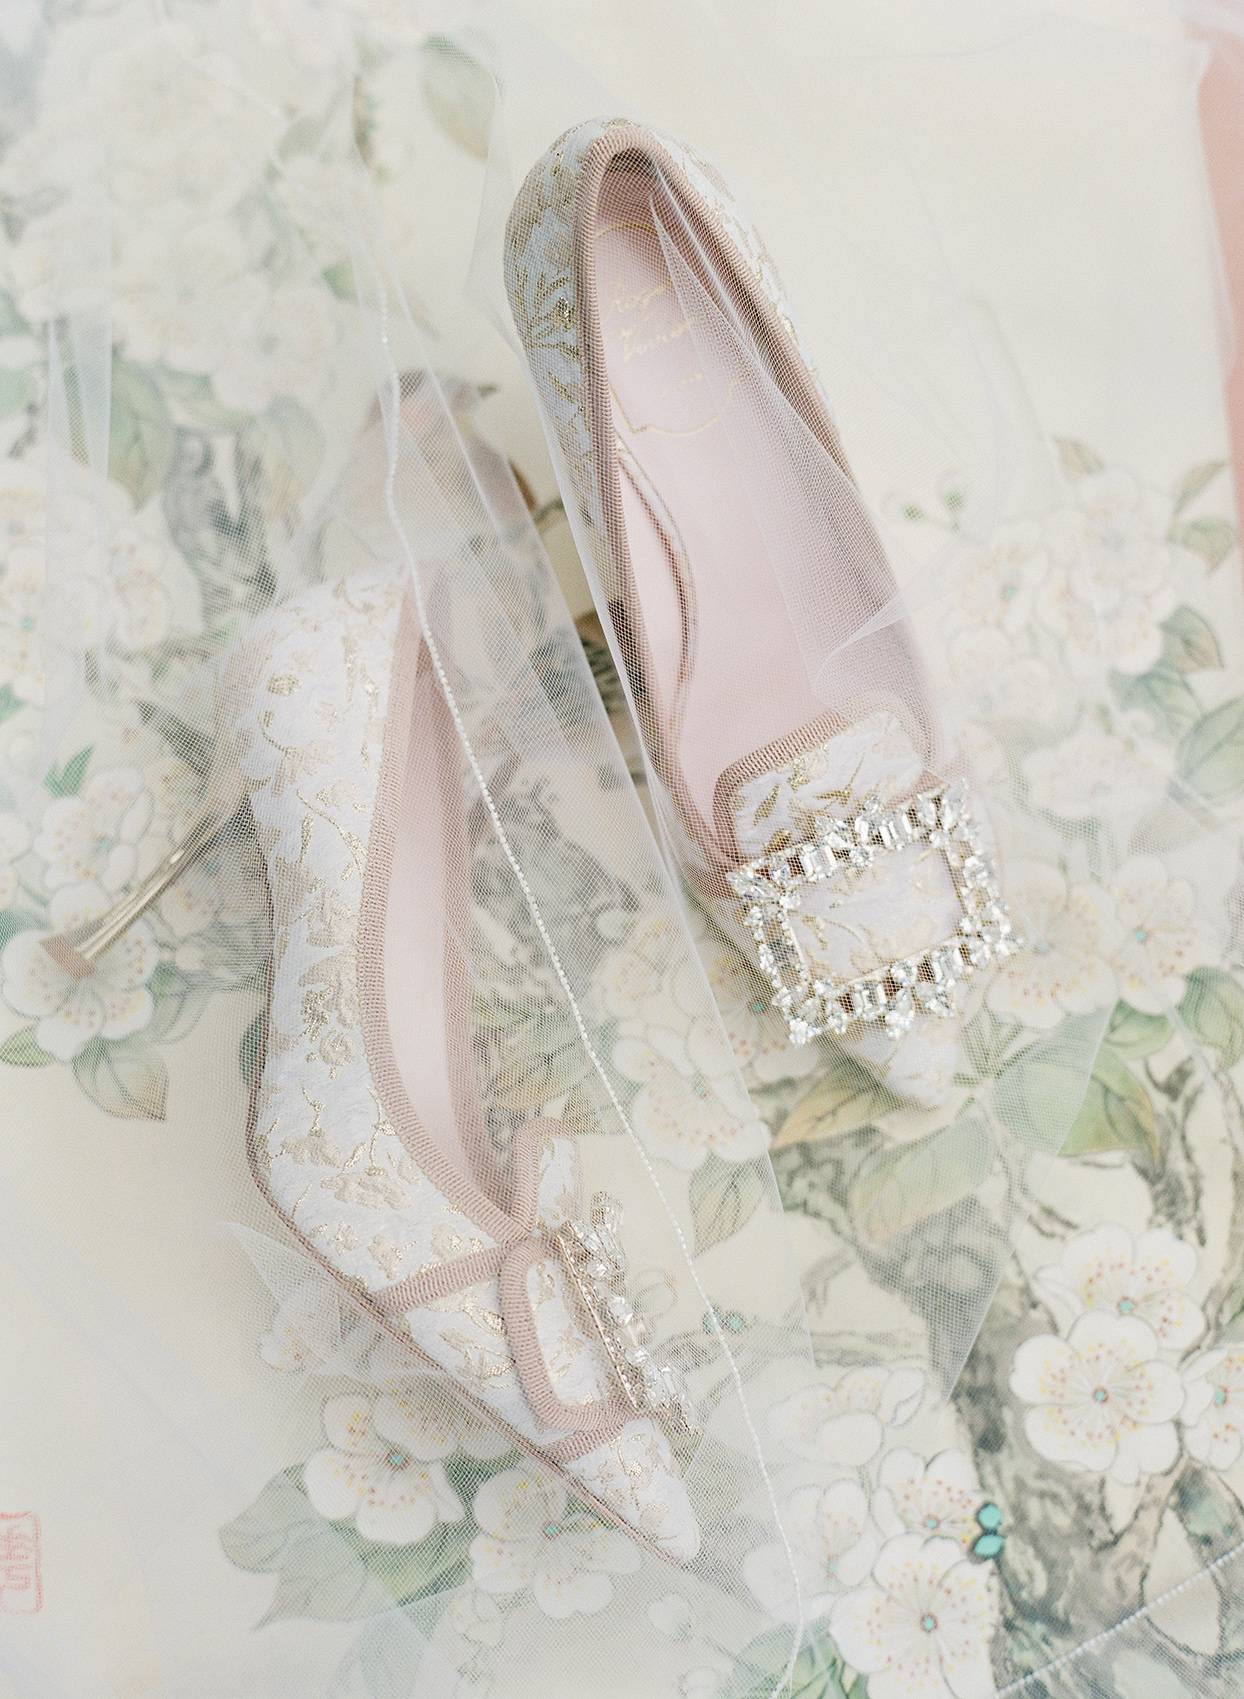 Bride's Roger Vivier pumps with a floral fabric, nude trim, Swarovski crystal buckle, and a comma heel